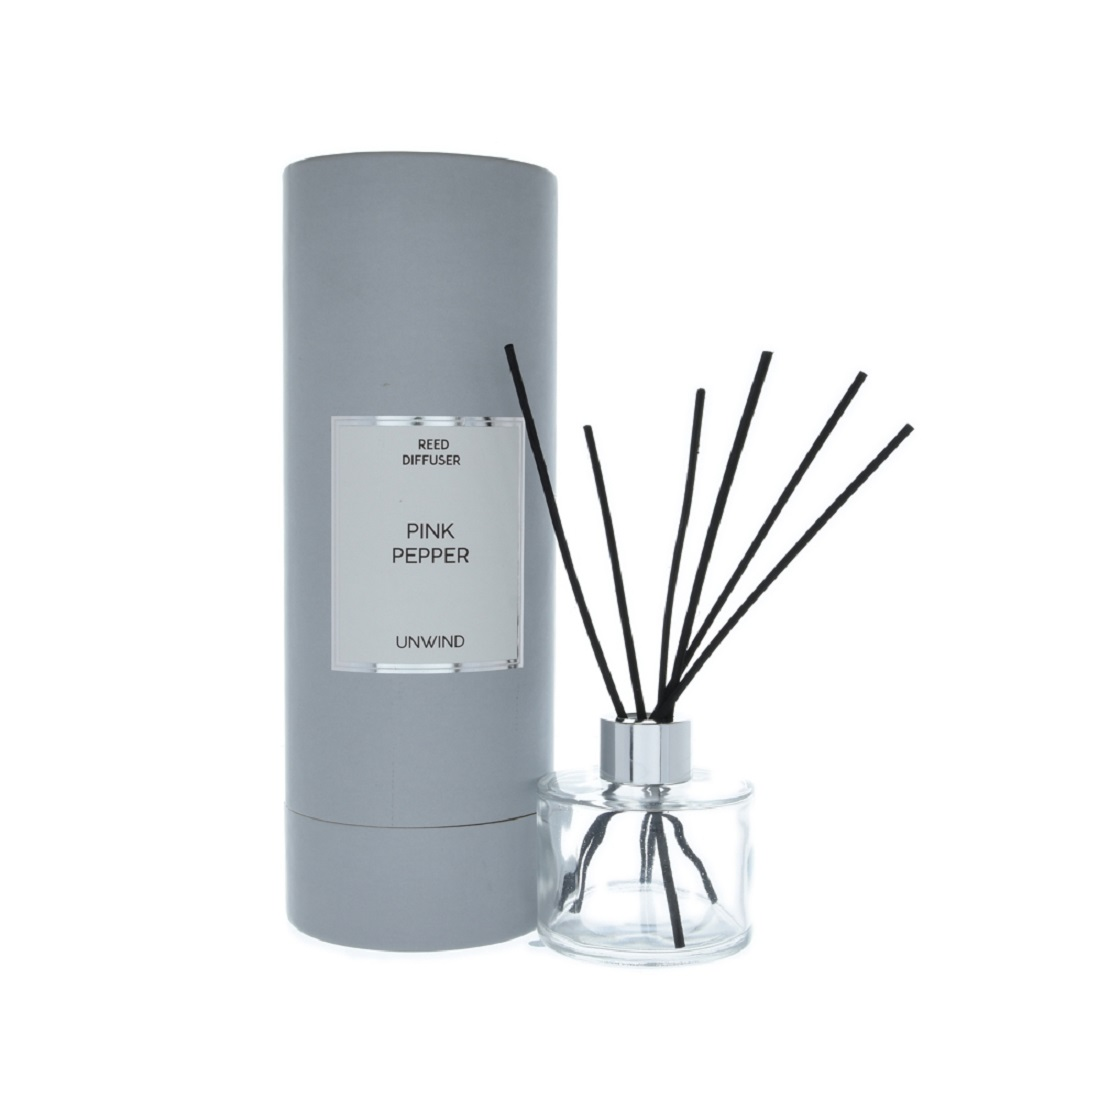 Pink Pepper 150ml Reed Diffuser